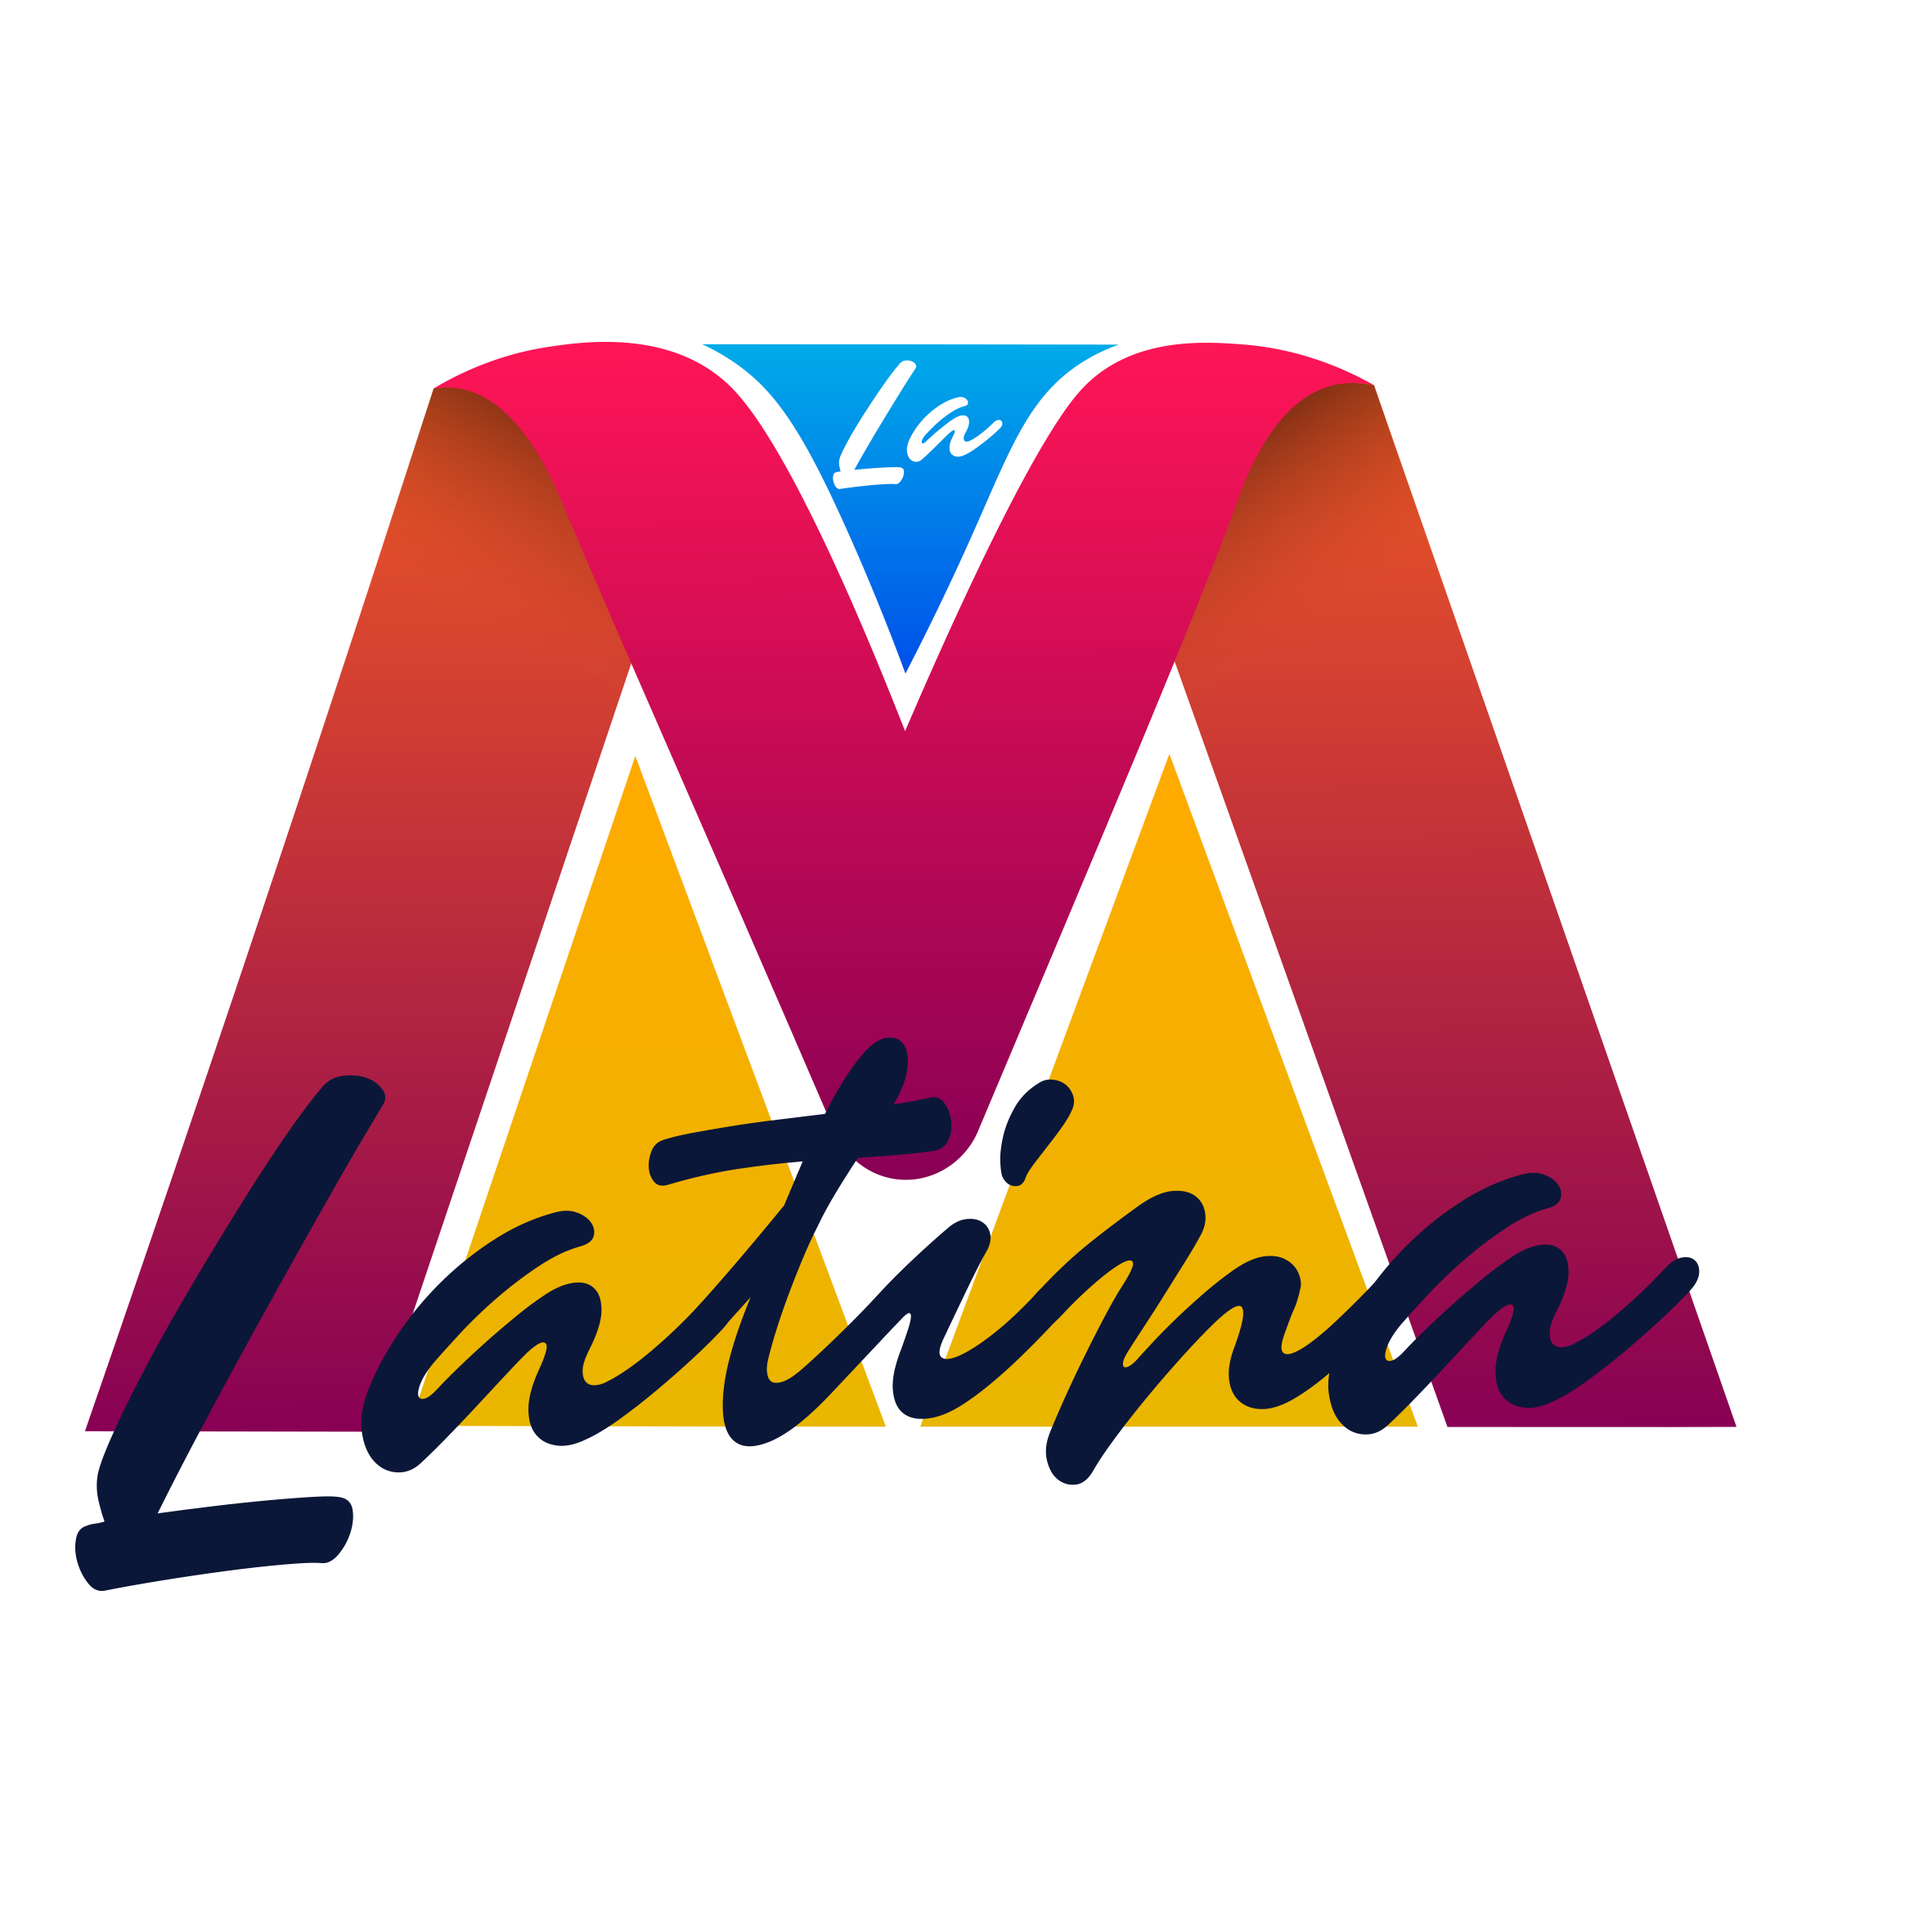 La Movida Latina